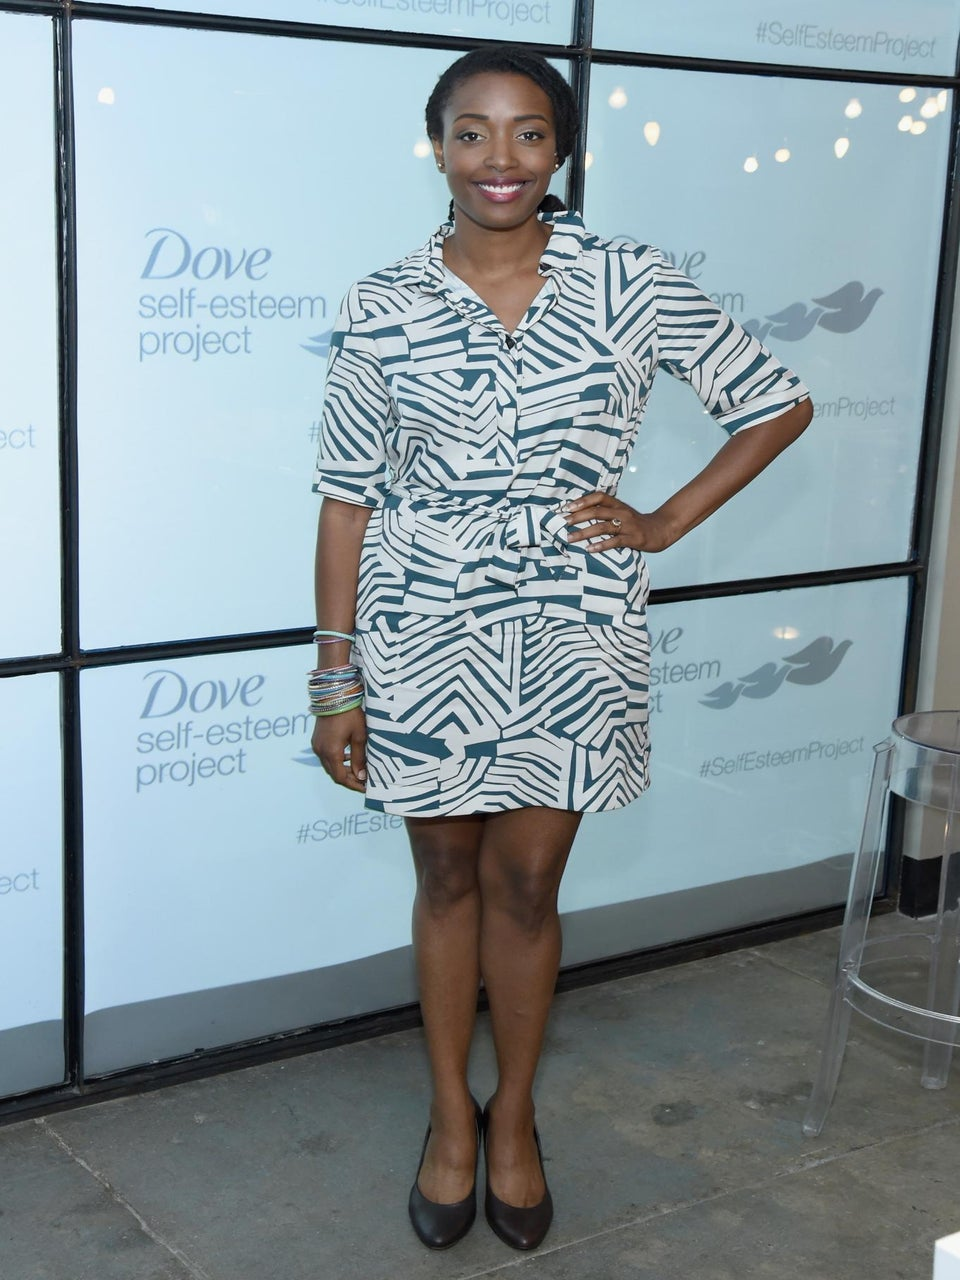 Vlogger Franchesca Ramsey and Dove Tackle Beauty Anxieties